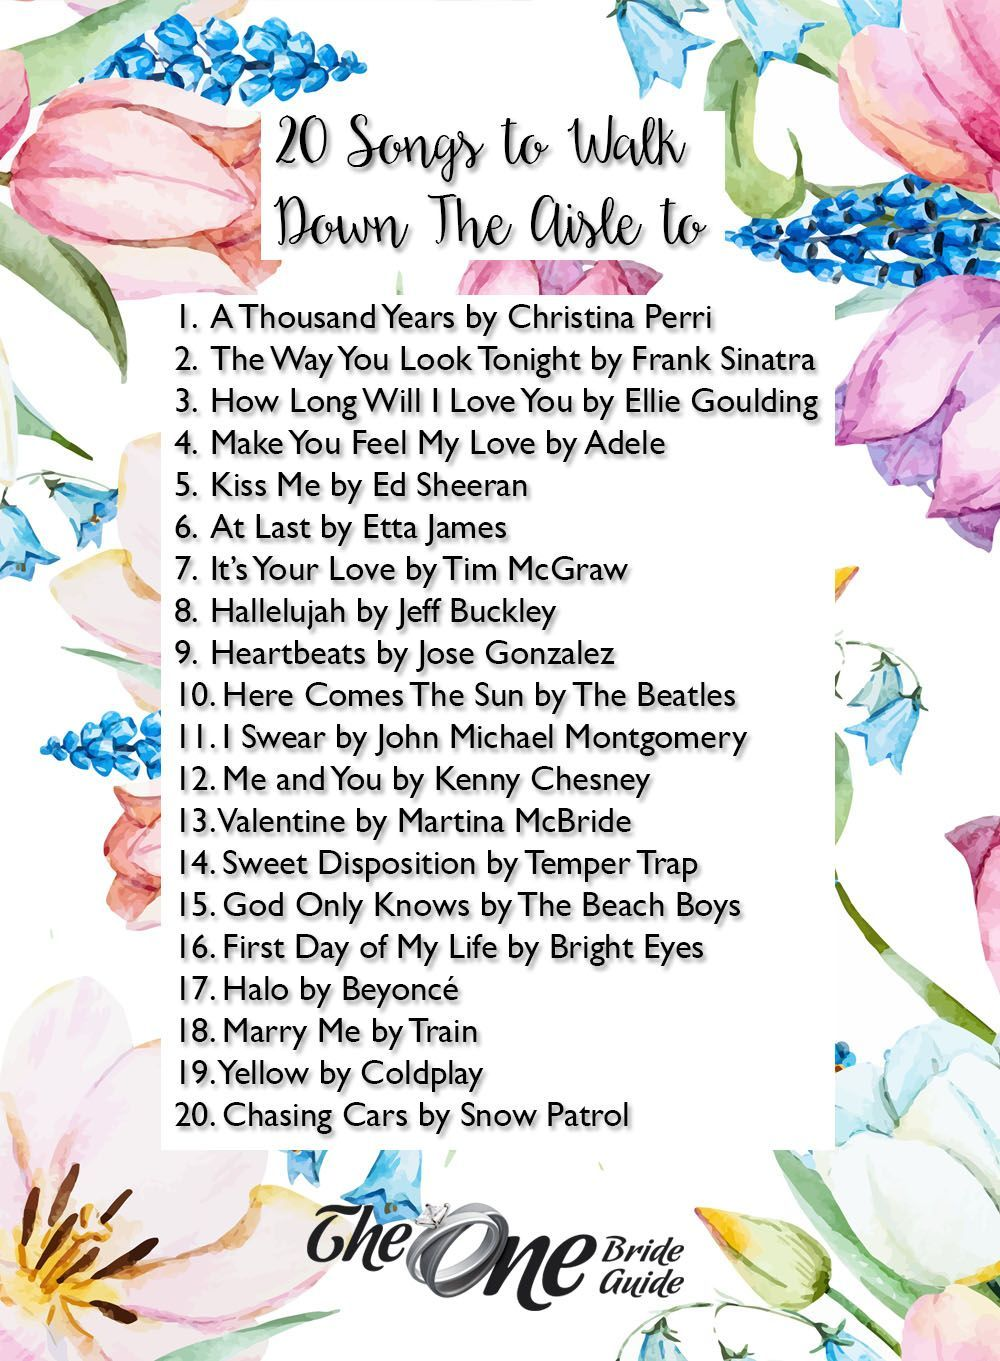 20 Songs to Walk Down The Aisle To Wedding ceremony